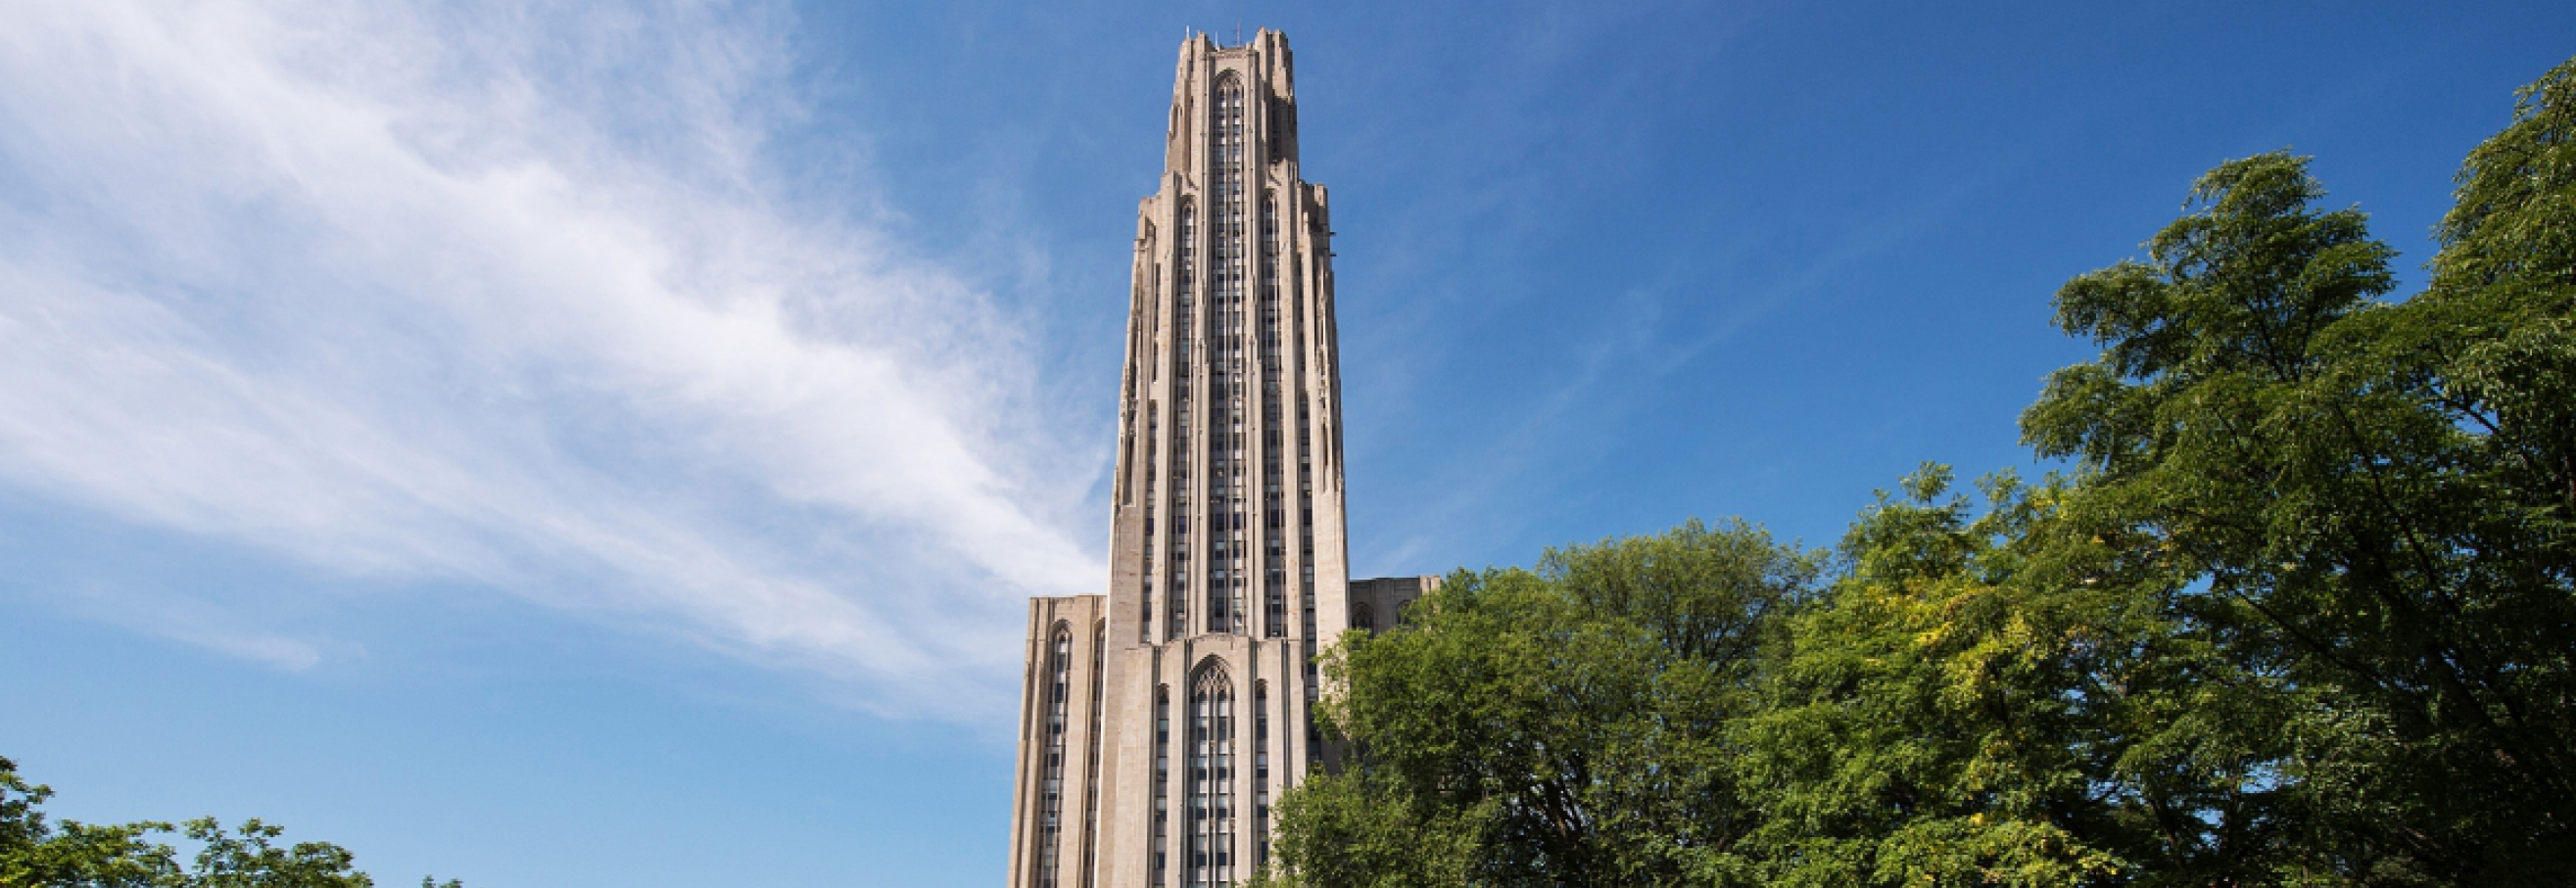 Cathedral of learning surrounded by clouds and trees